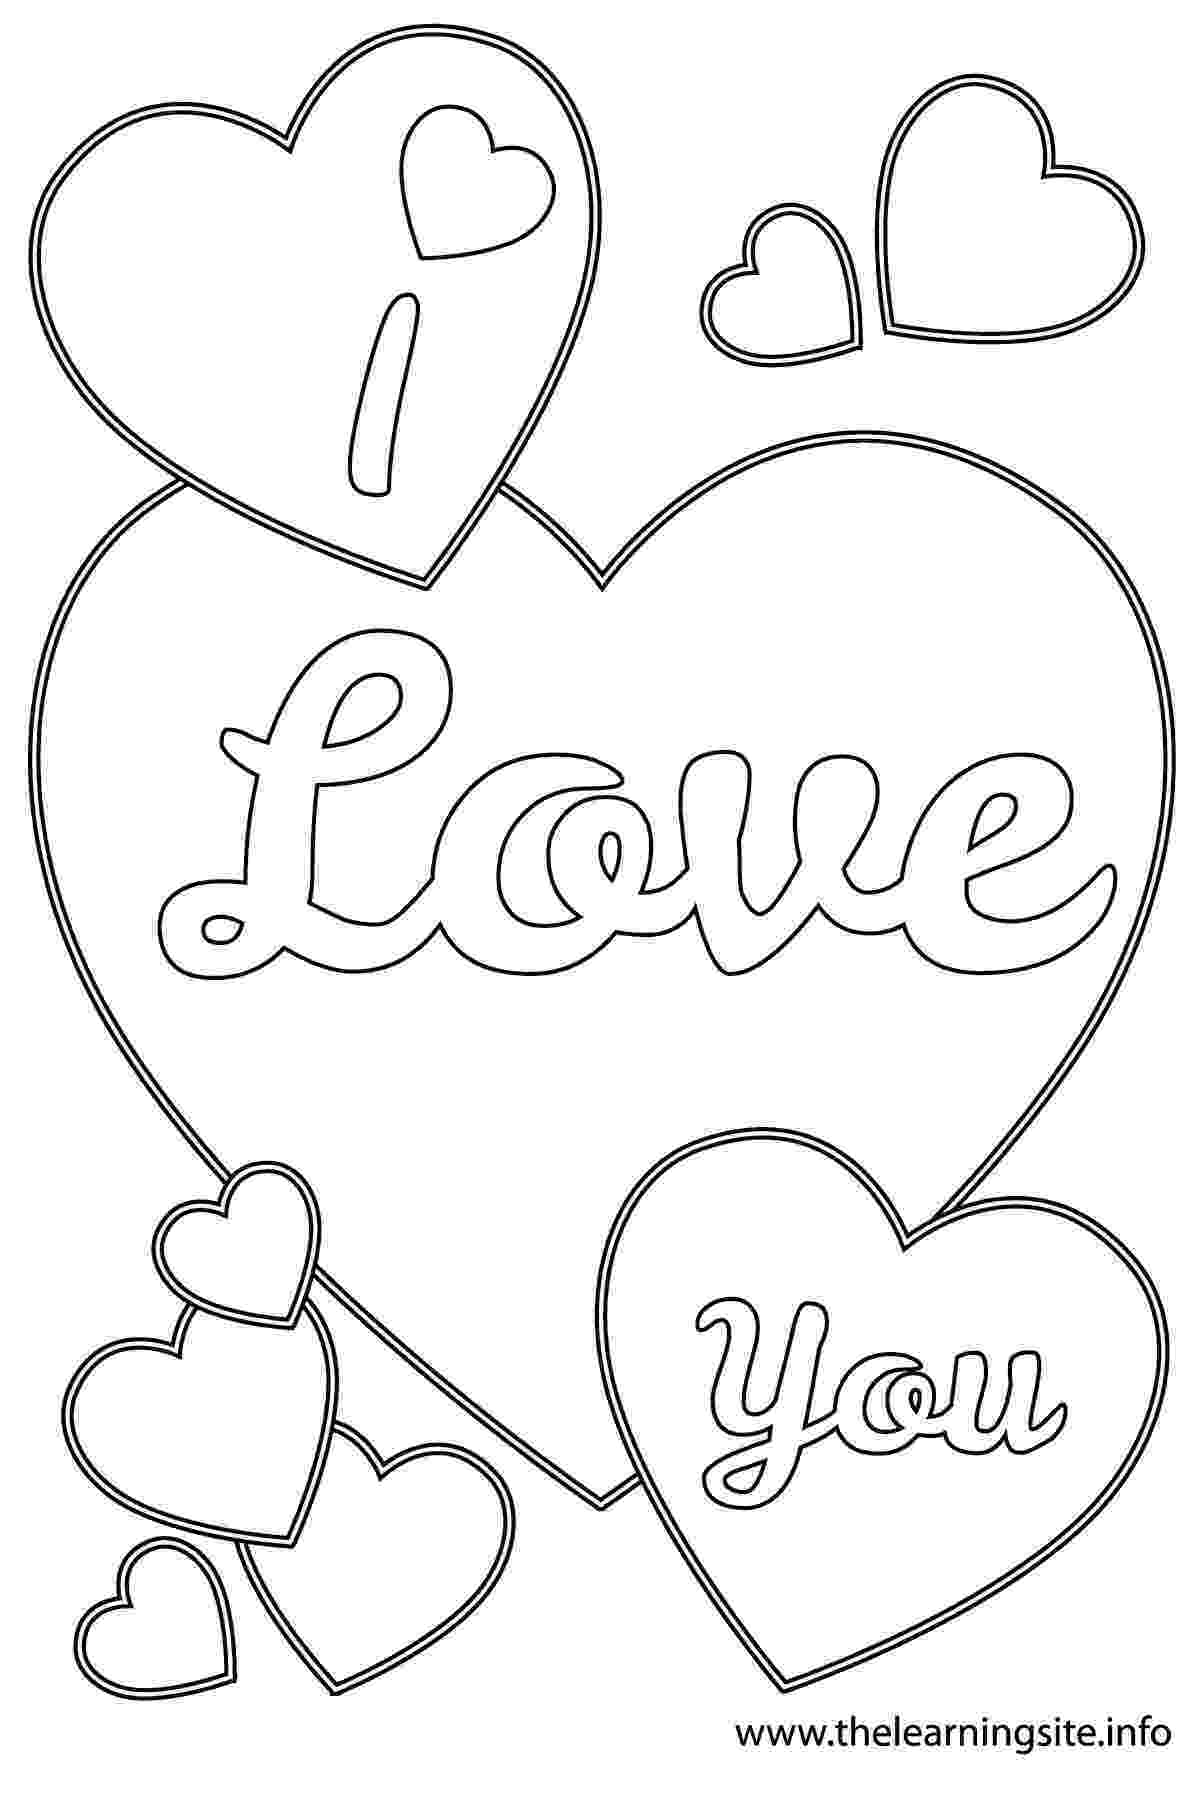 i love you coloring pictures quoti love you quot coloring pages coloring pictures love you i